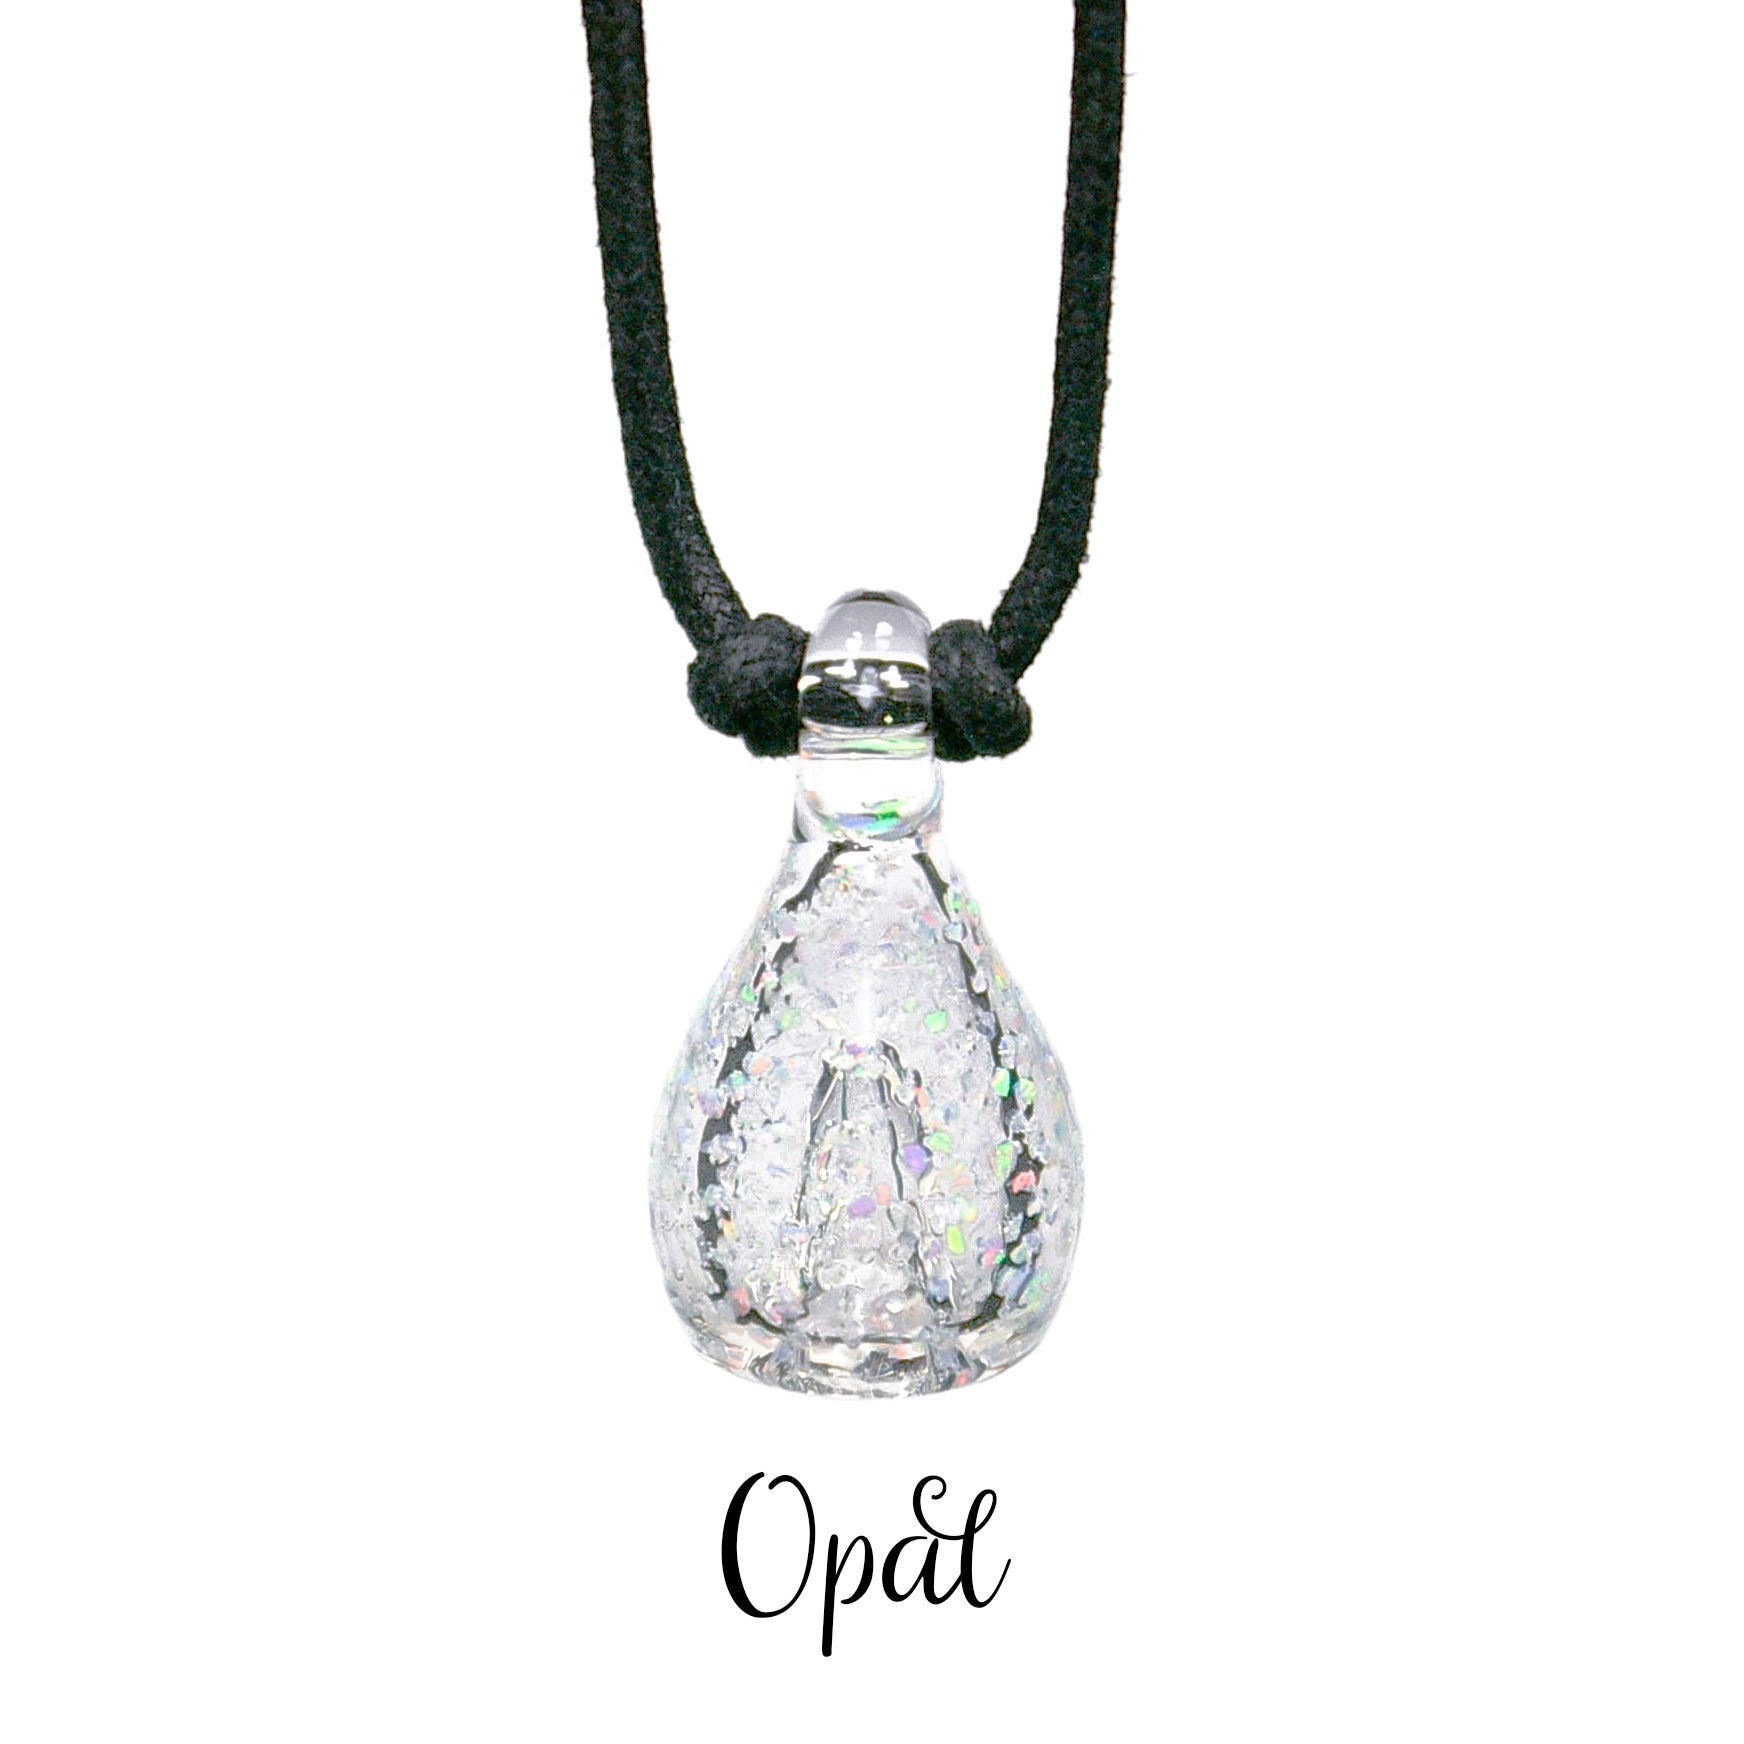 Aromatherapy jewelry opal frit pixie glassworks aromatherapy pendant opal frit aloadofball Image collections